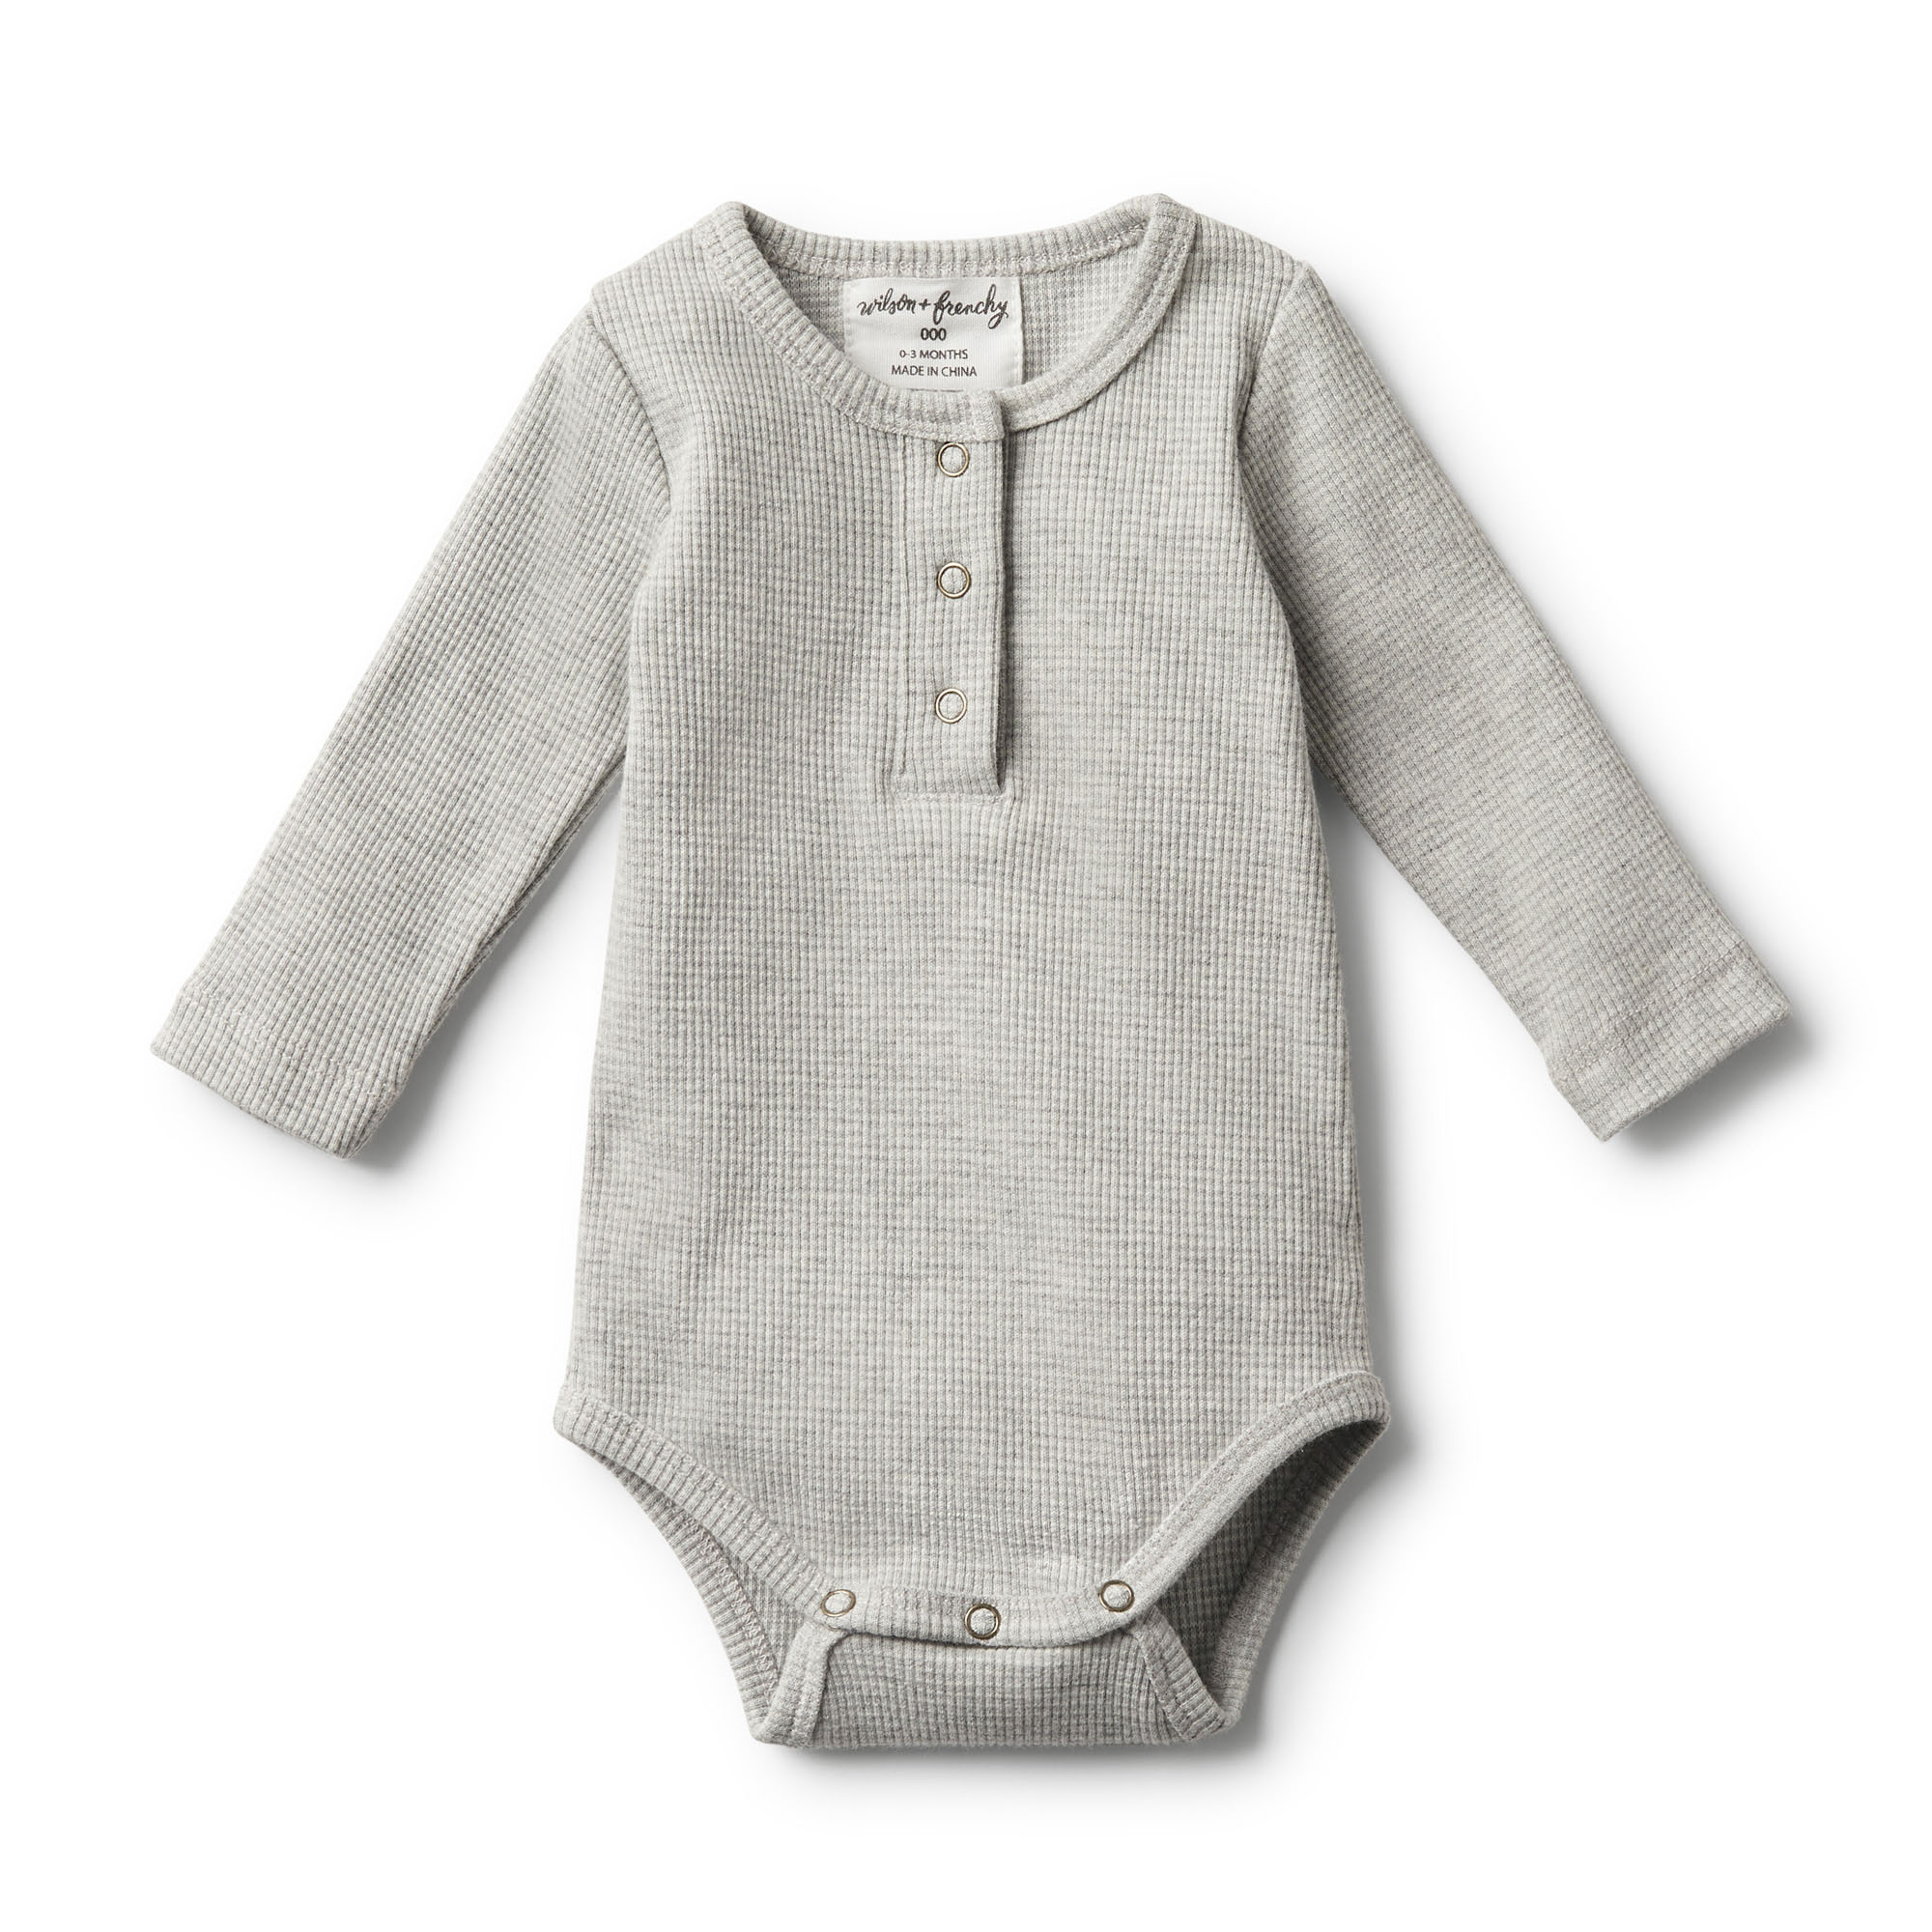 b195b343883 Wilson & Frenchy Organic Grey Marle Rib Long Sleeve Bodysuit -  CLOTHING-BABY-Baby All In Ones : Kid Republic - W19 Wilson & Frenchy D1